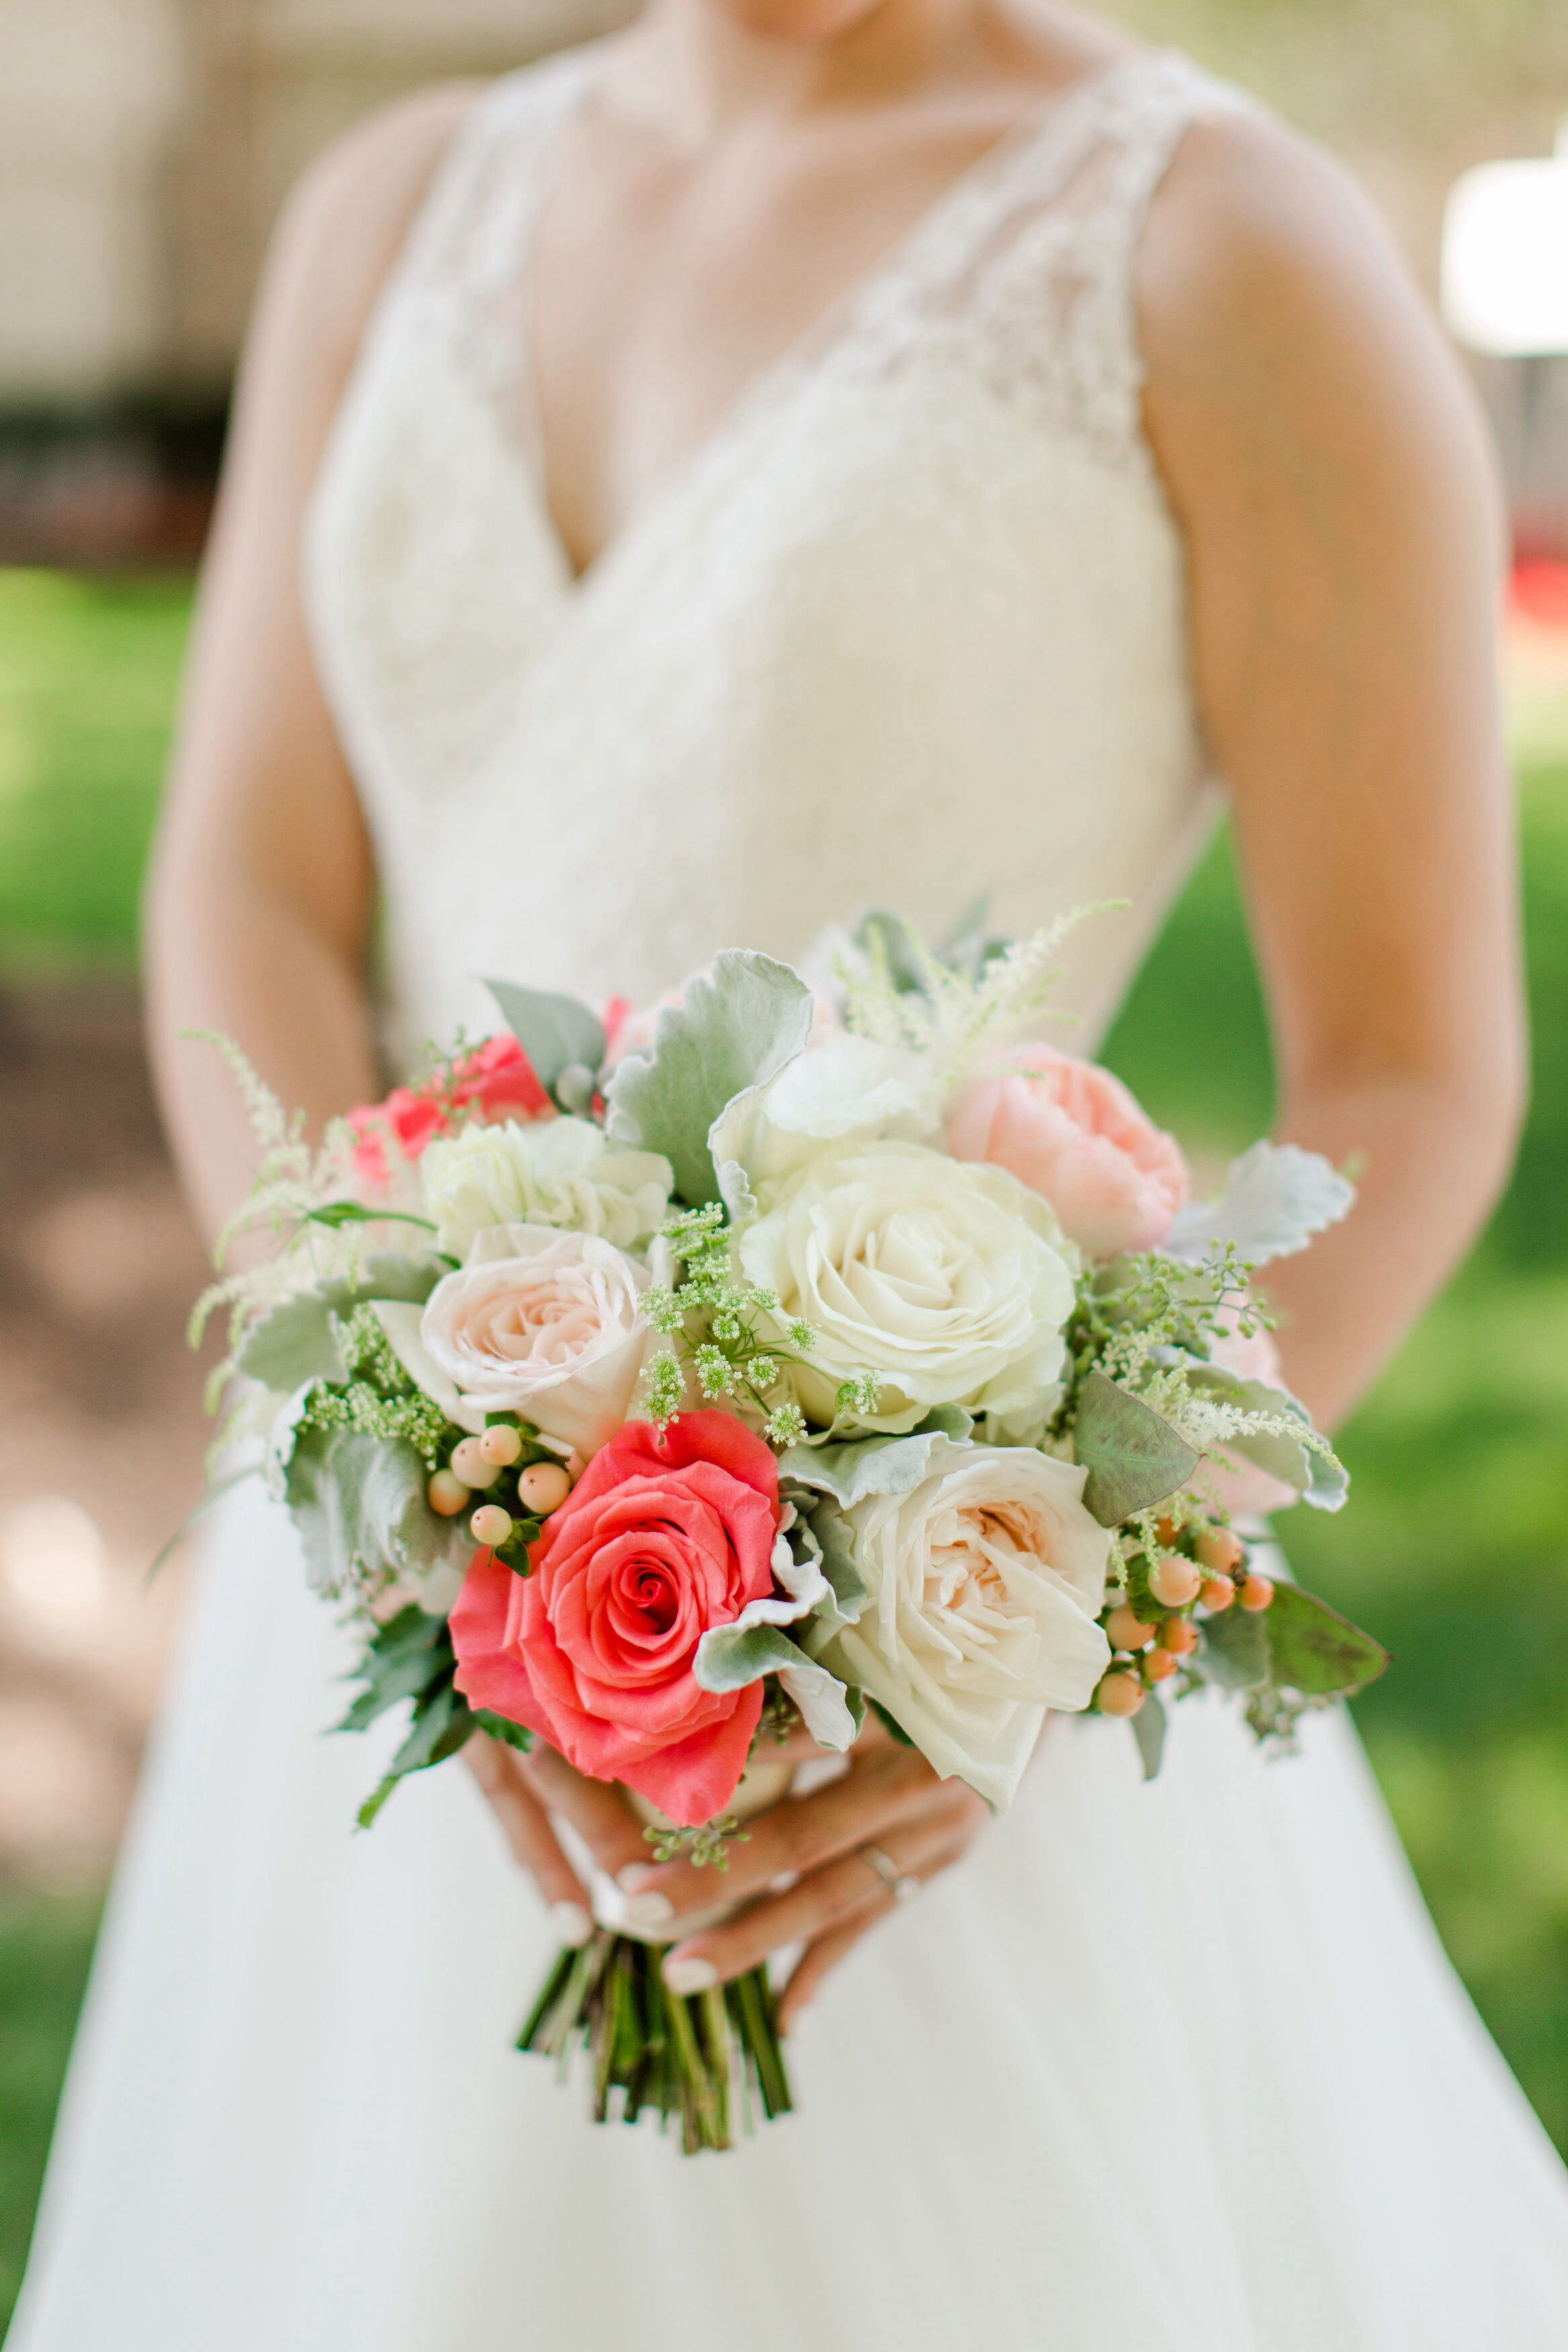 White Garden Rose Hair bridal bouquet with roses in coral, peach and white, peach berries